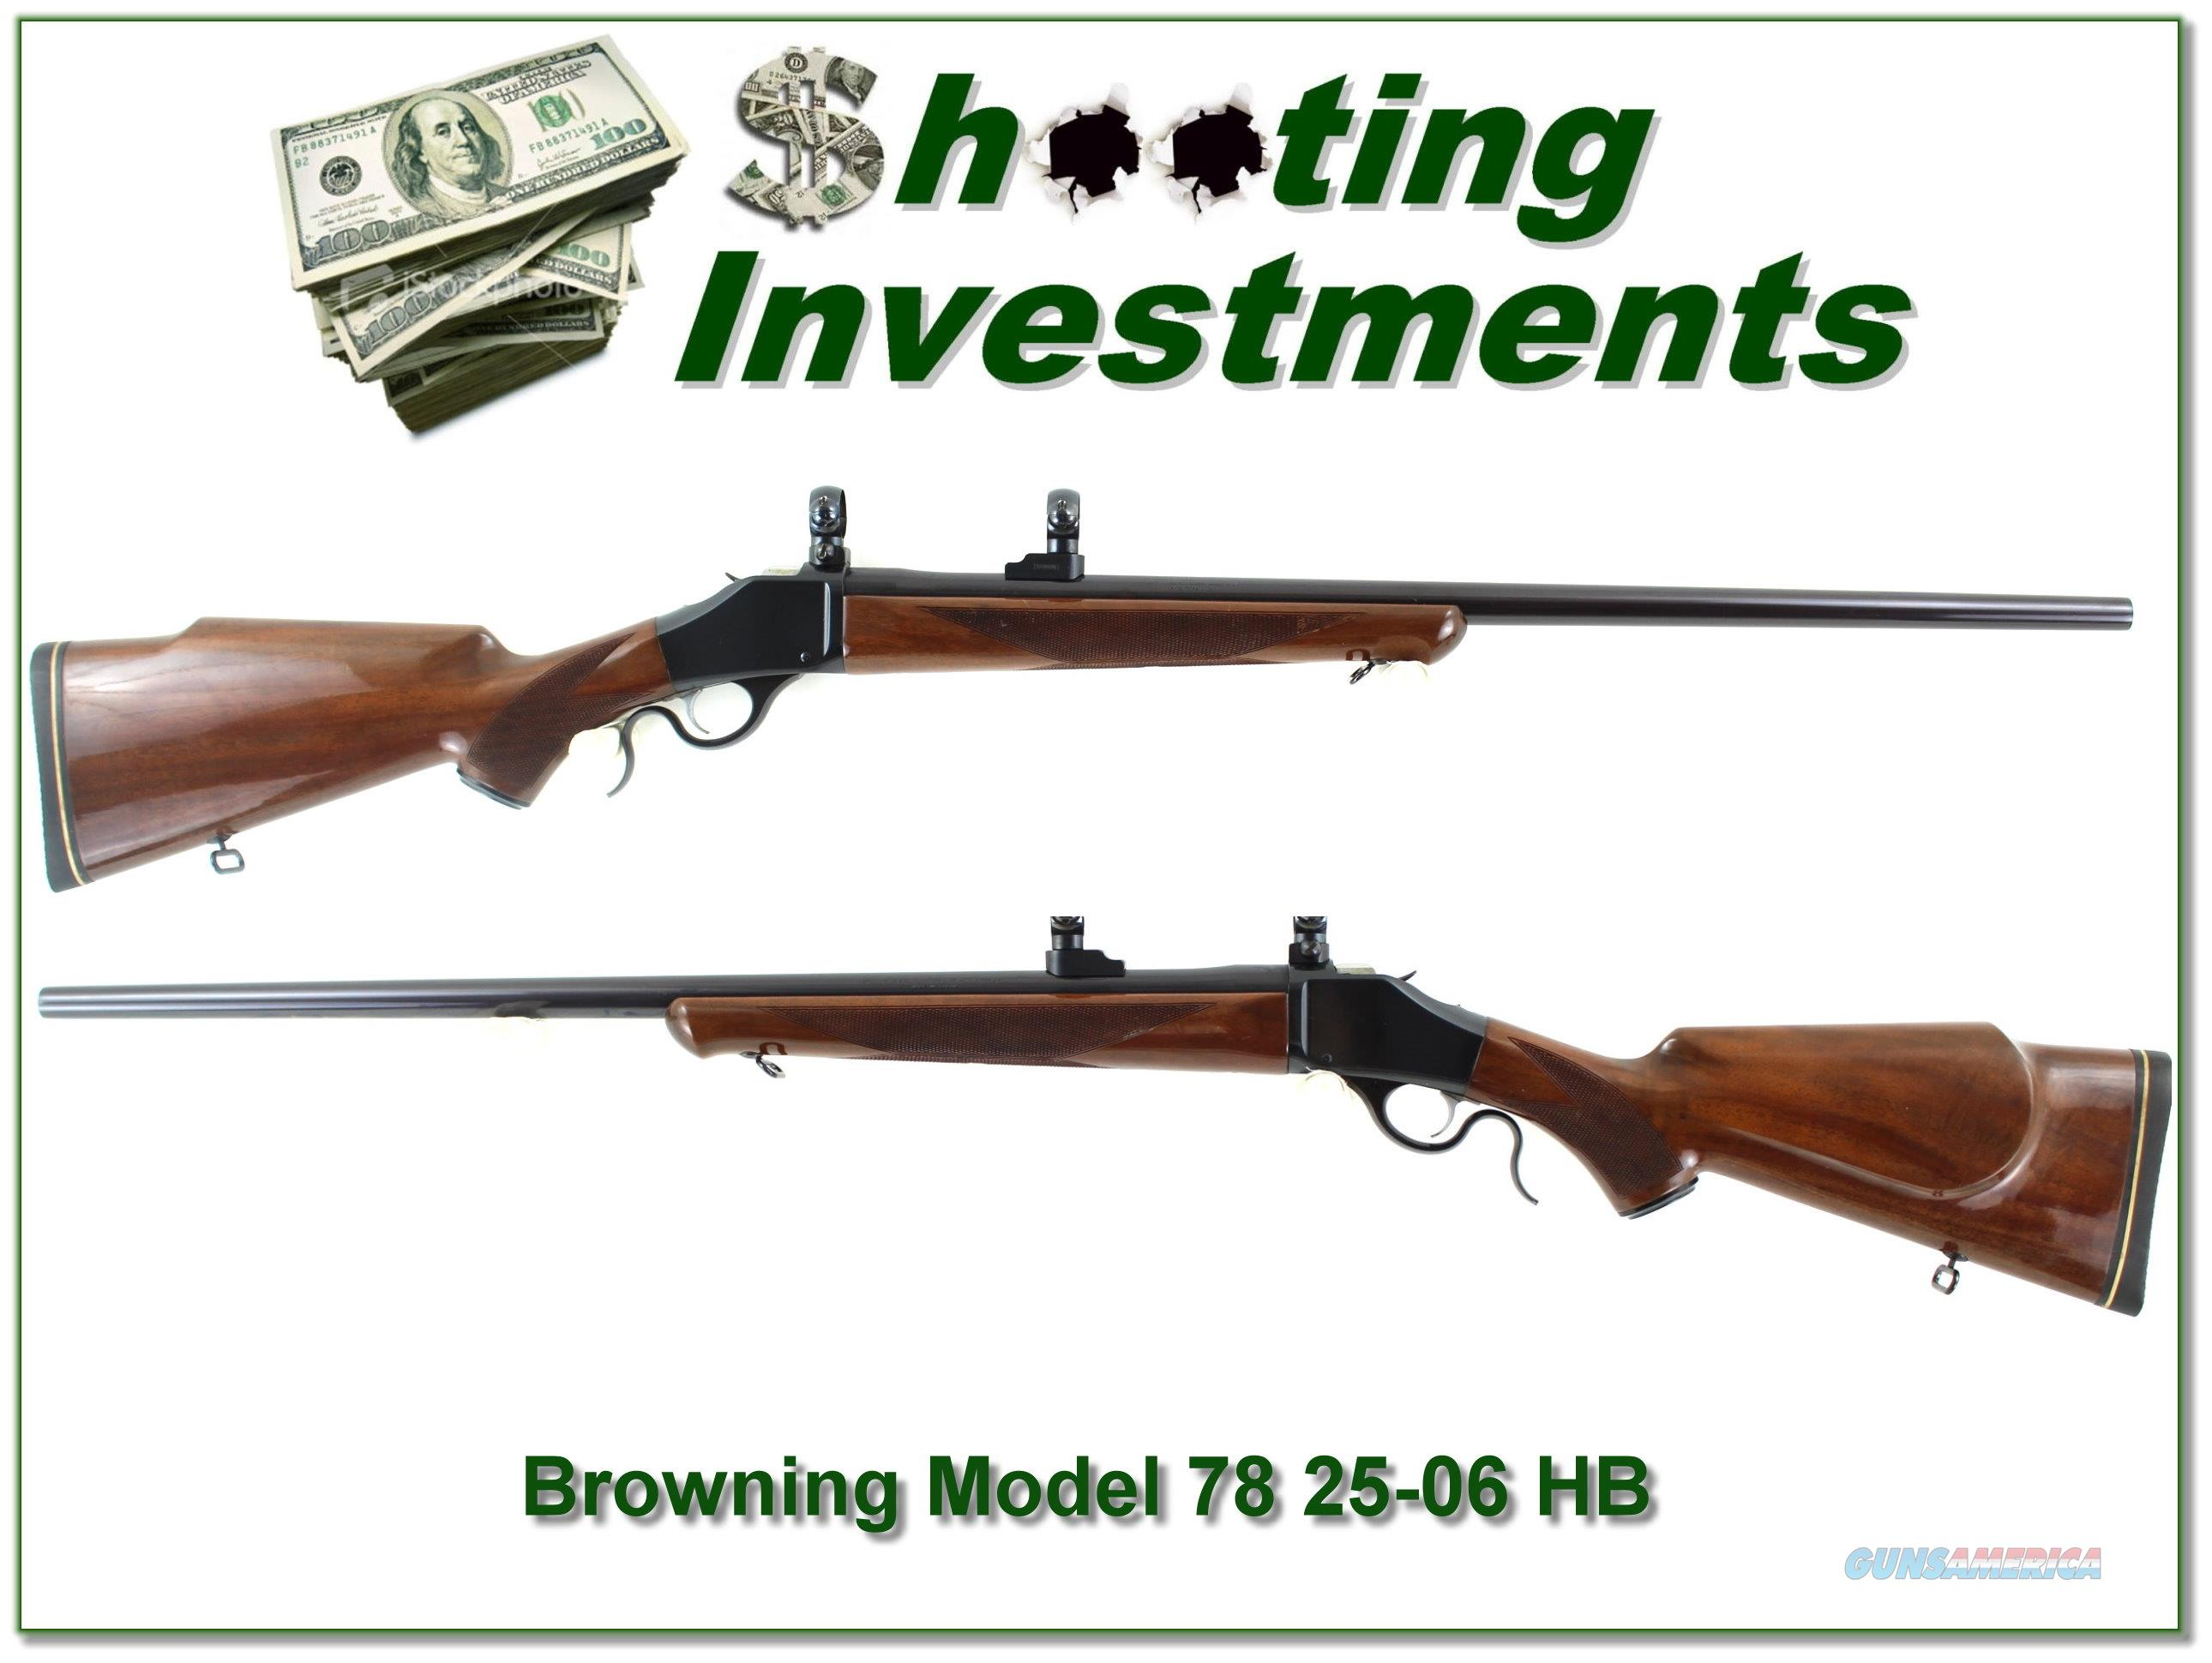 Browning Model 78 had to find 25-06 26in Heavy Barrel  Guns > Rifles > Browning Rifles > Single Shot